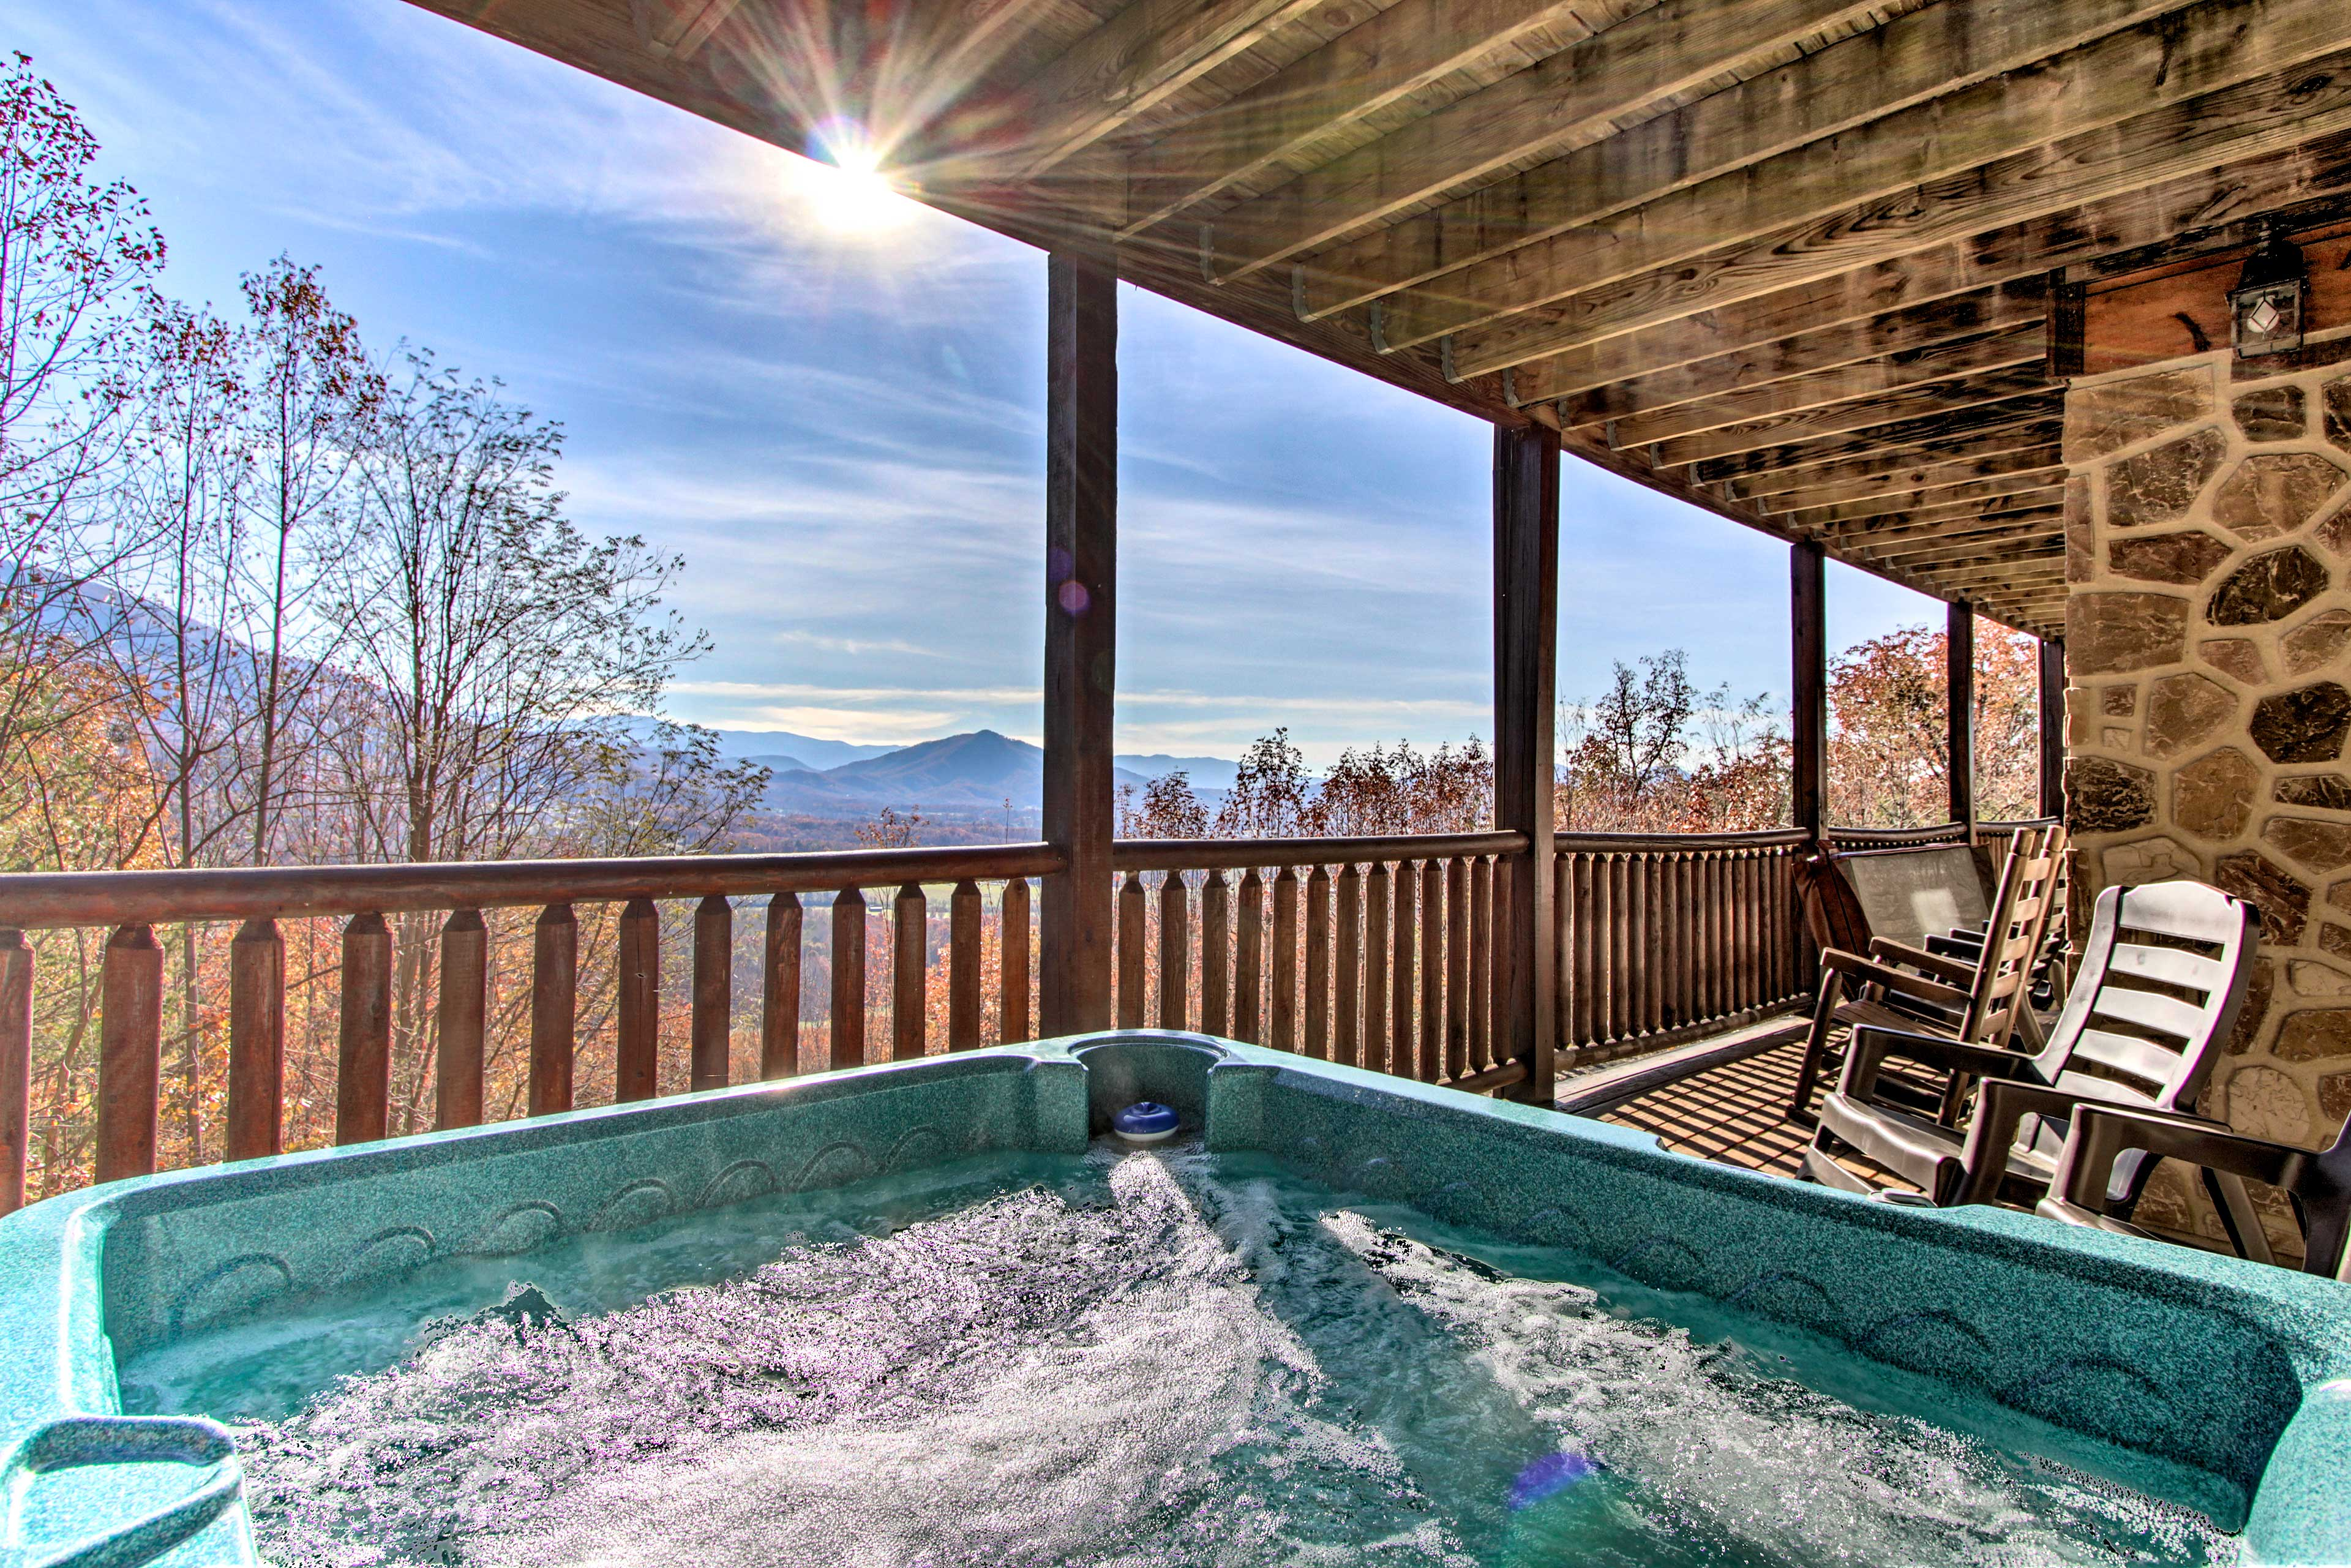 Up to 16 lucky guests will enjoy this home's deck with Smoky Mountain Views.